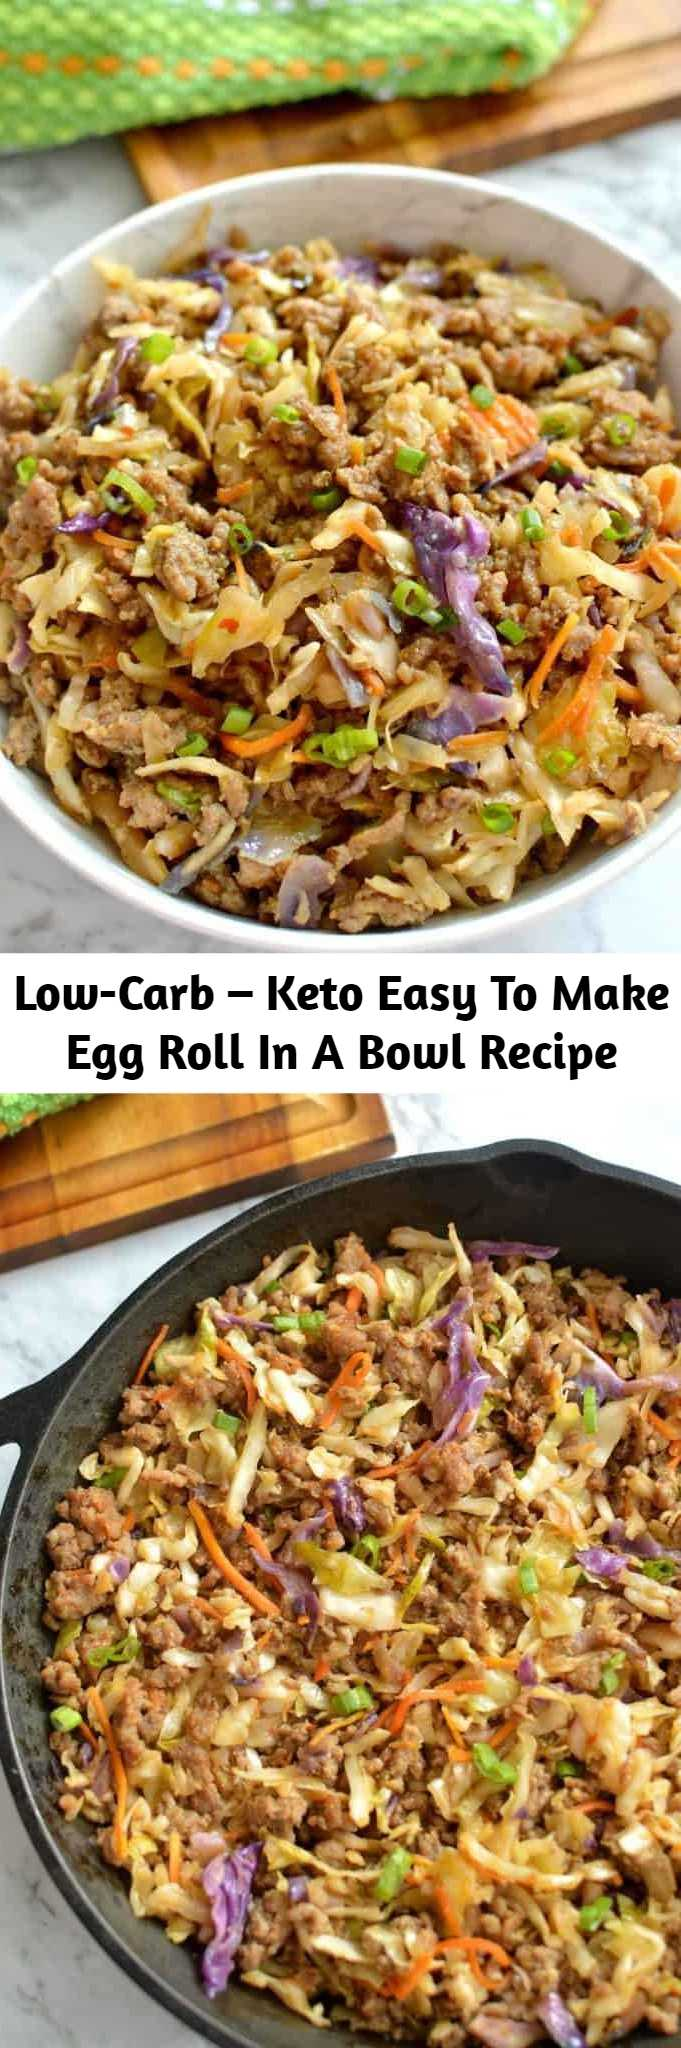 Low-Carb – Keto Easy To Make Egg Roll In A Bowl Recipe - This low carb easy to make egg roll in a bowl is an easy and delicious recipe to make on busy weeknights! Scroll down for the keto-friendly recipe that only takes 15 minutes to make!! #lowcarb #ketorecipes #lowcarbdinner #keto #ketodiet #eggrollinabowl #eggrollbowl #eggroll